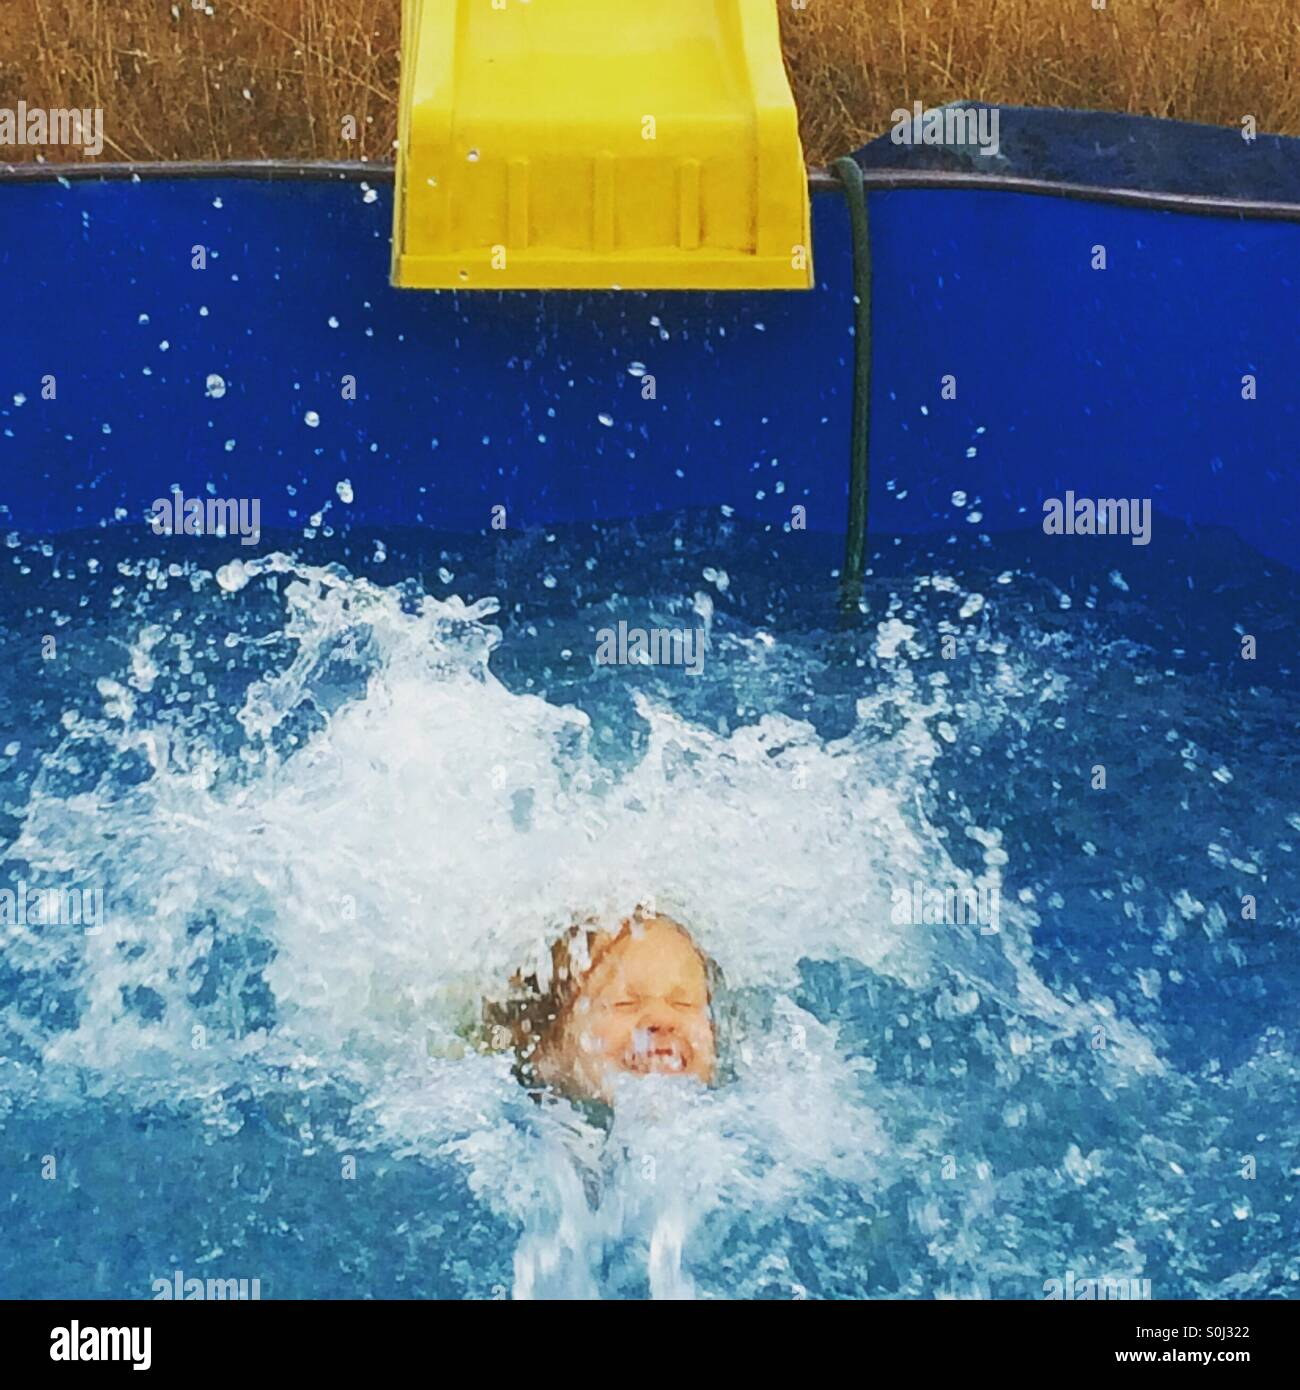 Girl slides down into the water from the diy water slide - Stock Image